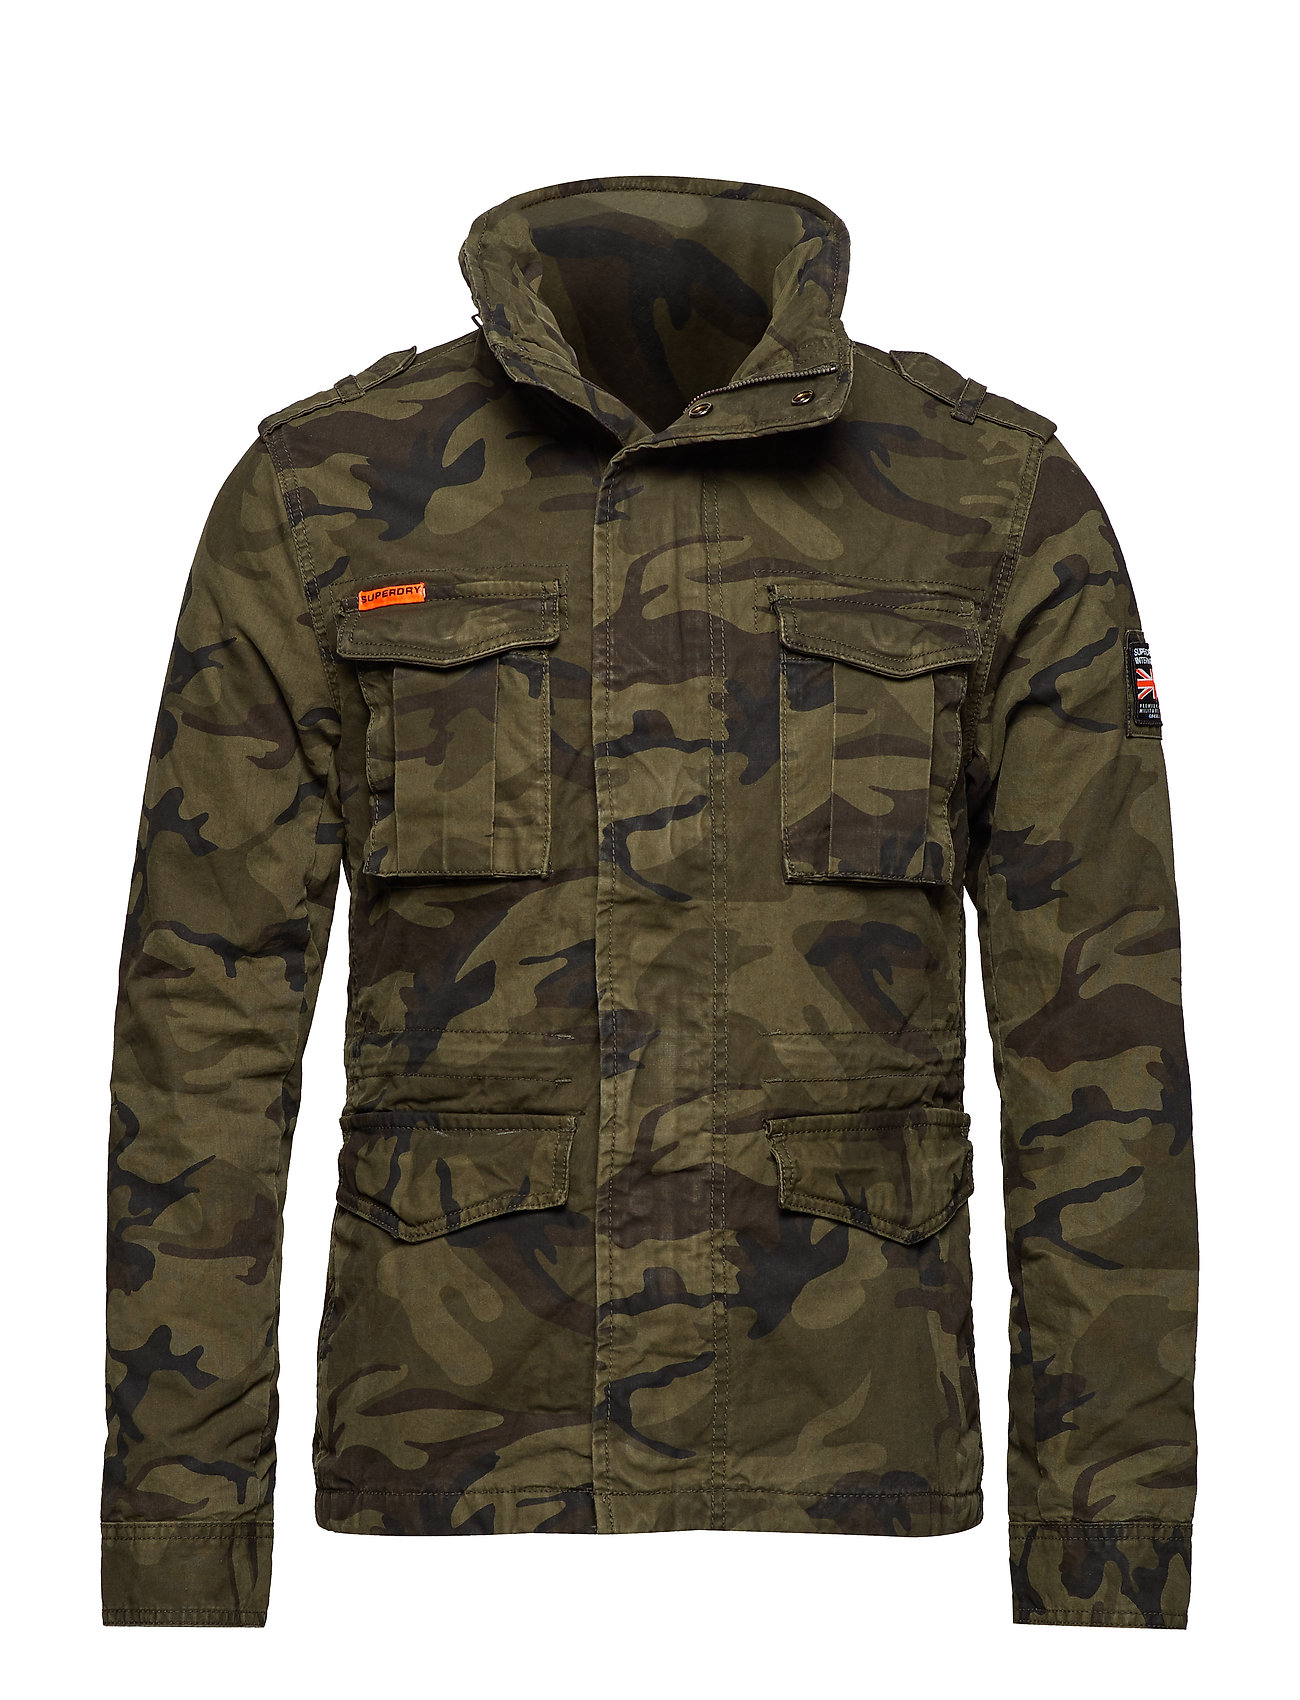 Superdry CLASSIC ROOKIE MILITARY JACKET - HURRICANE CAMO